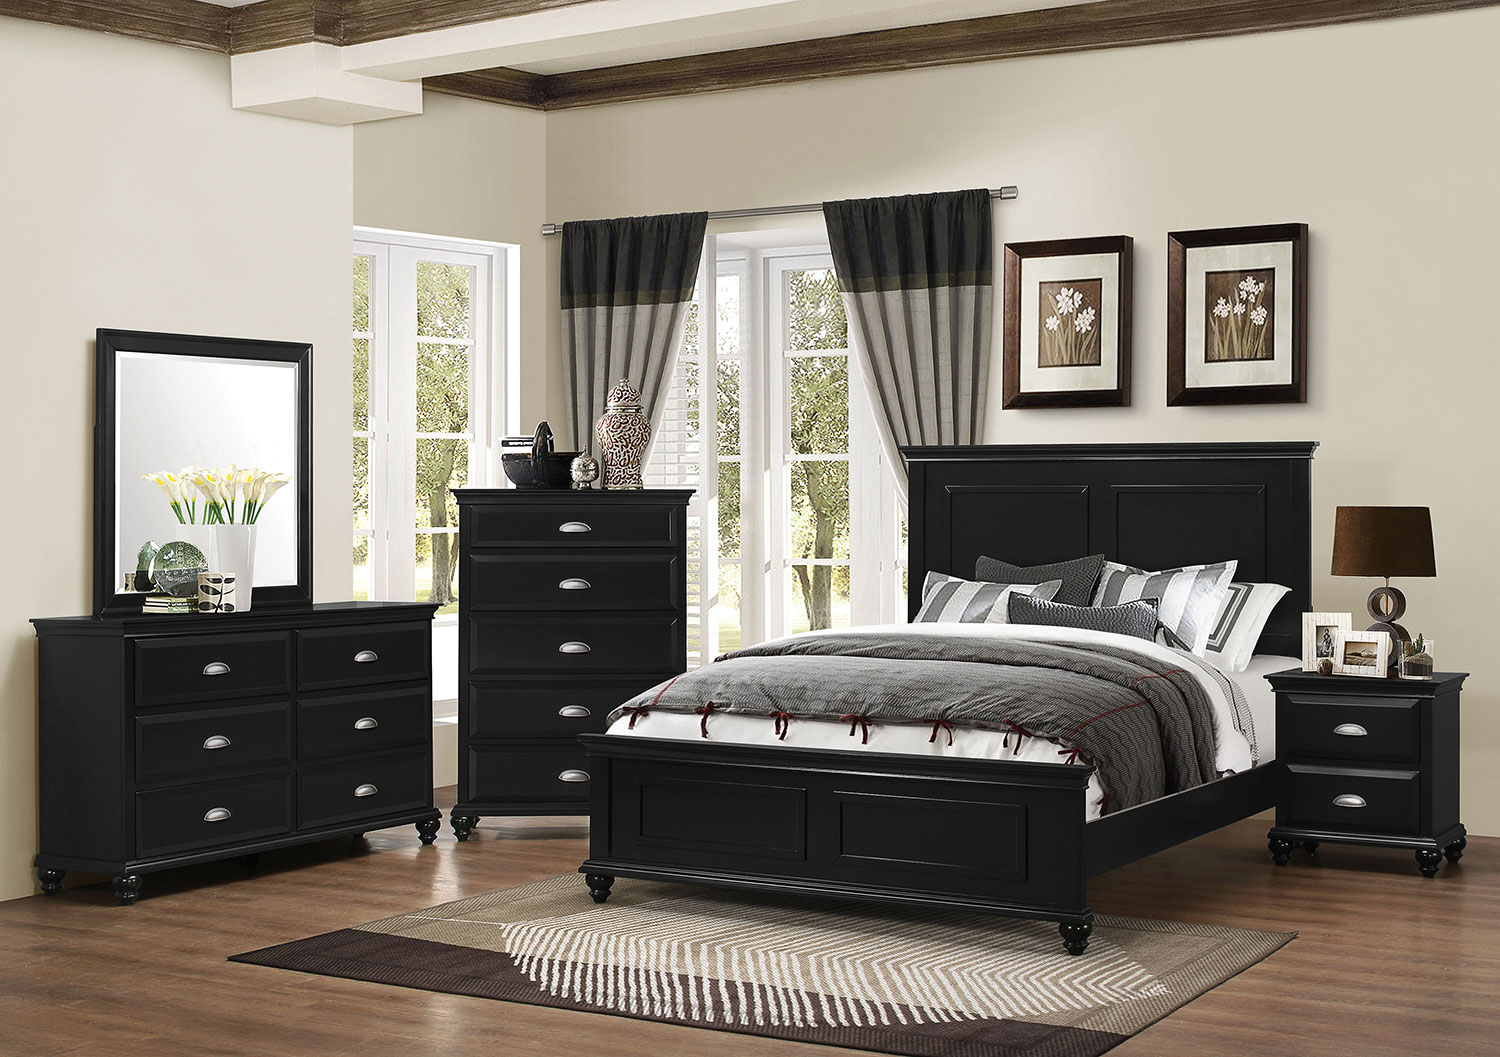 Meadow Grove 4-Piece Queen Bedroom Set with Dresser, Mirror and Nightstand - Black